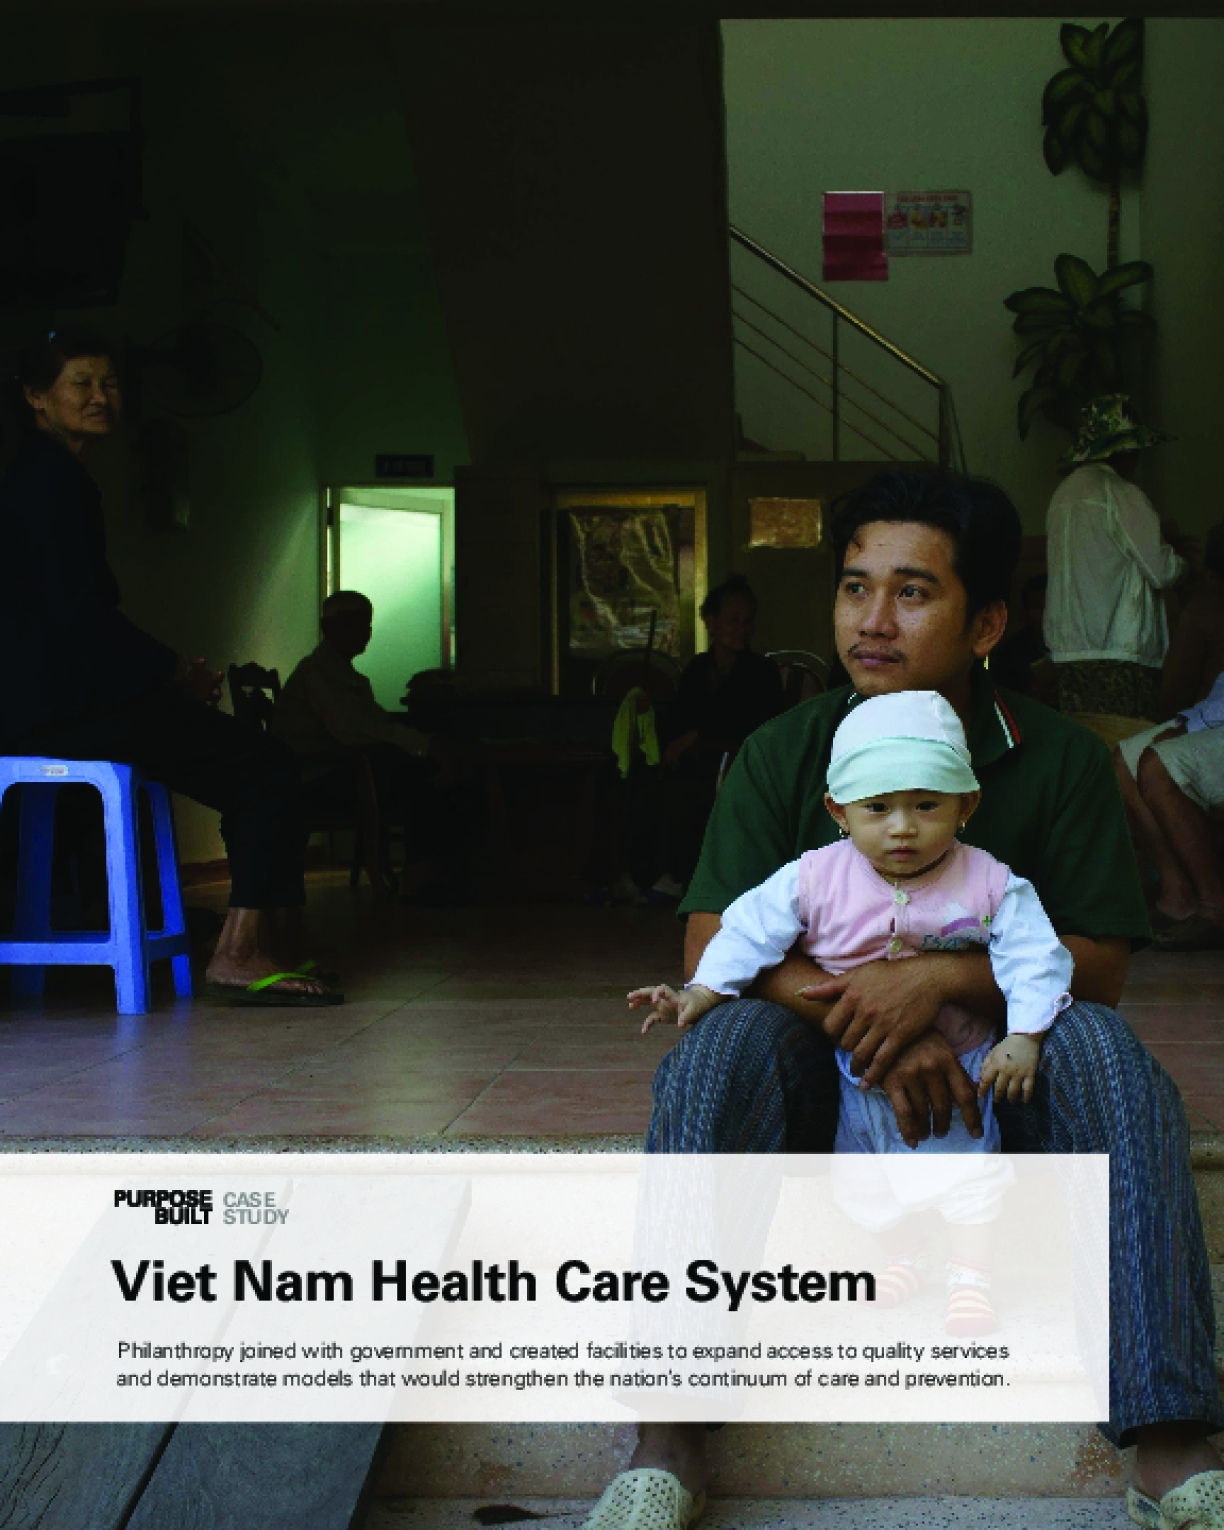 Purpose Built Case Study: Viet Nam Health Care System